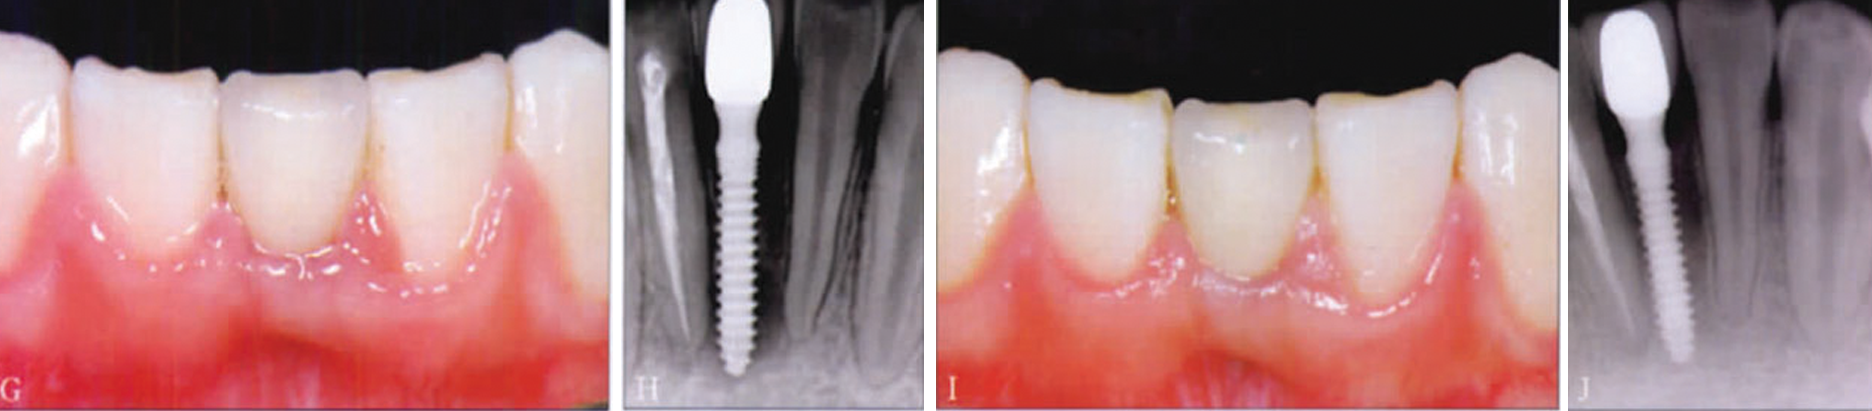 Immediate restoration implant with mini-implant of case 2.